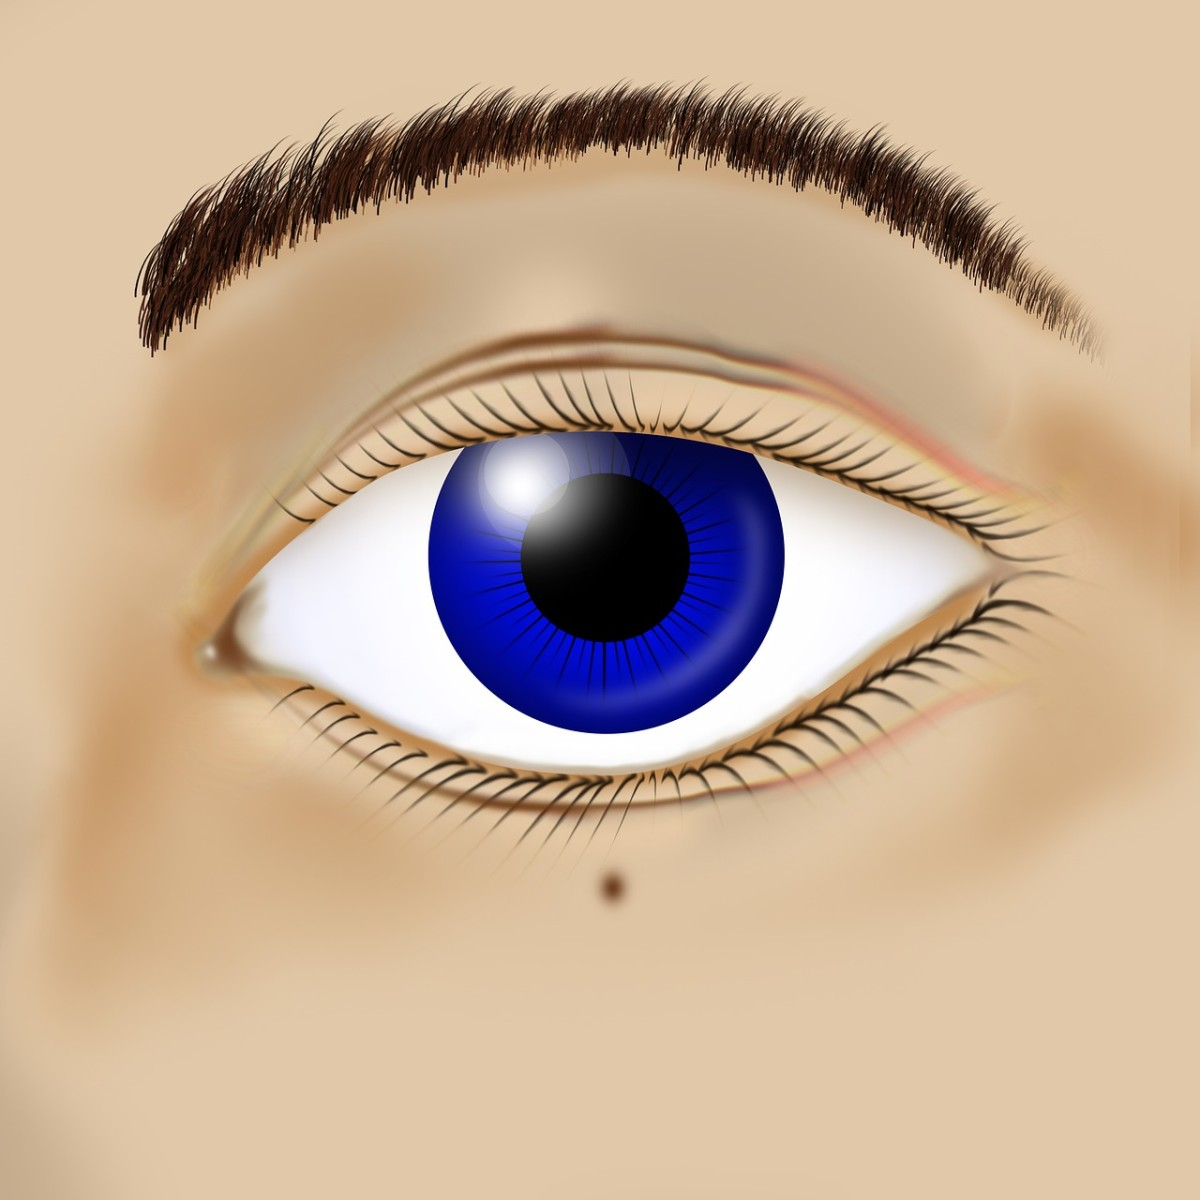 Image of a blue eye